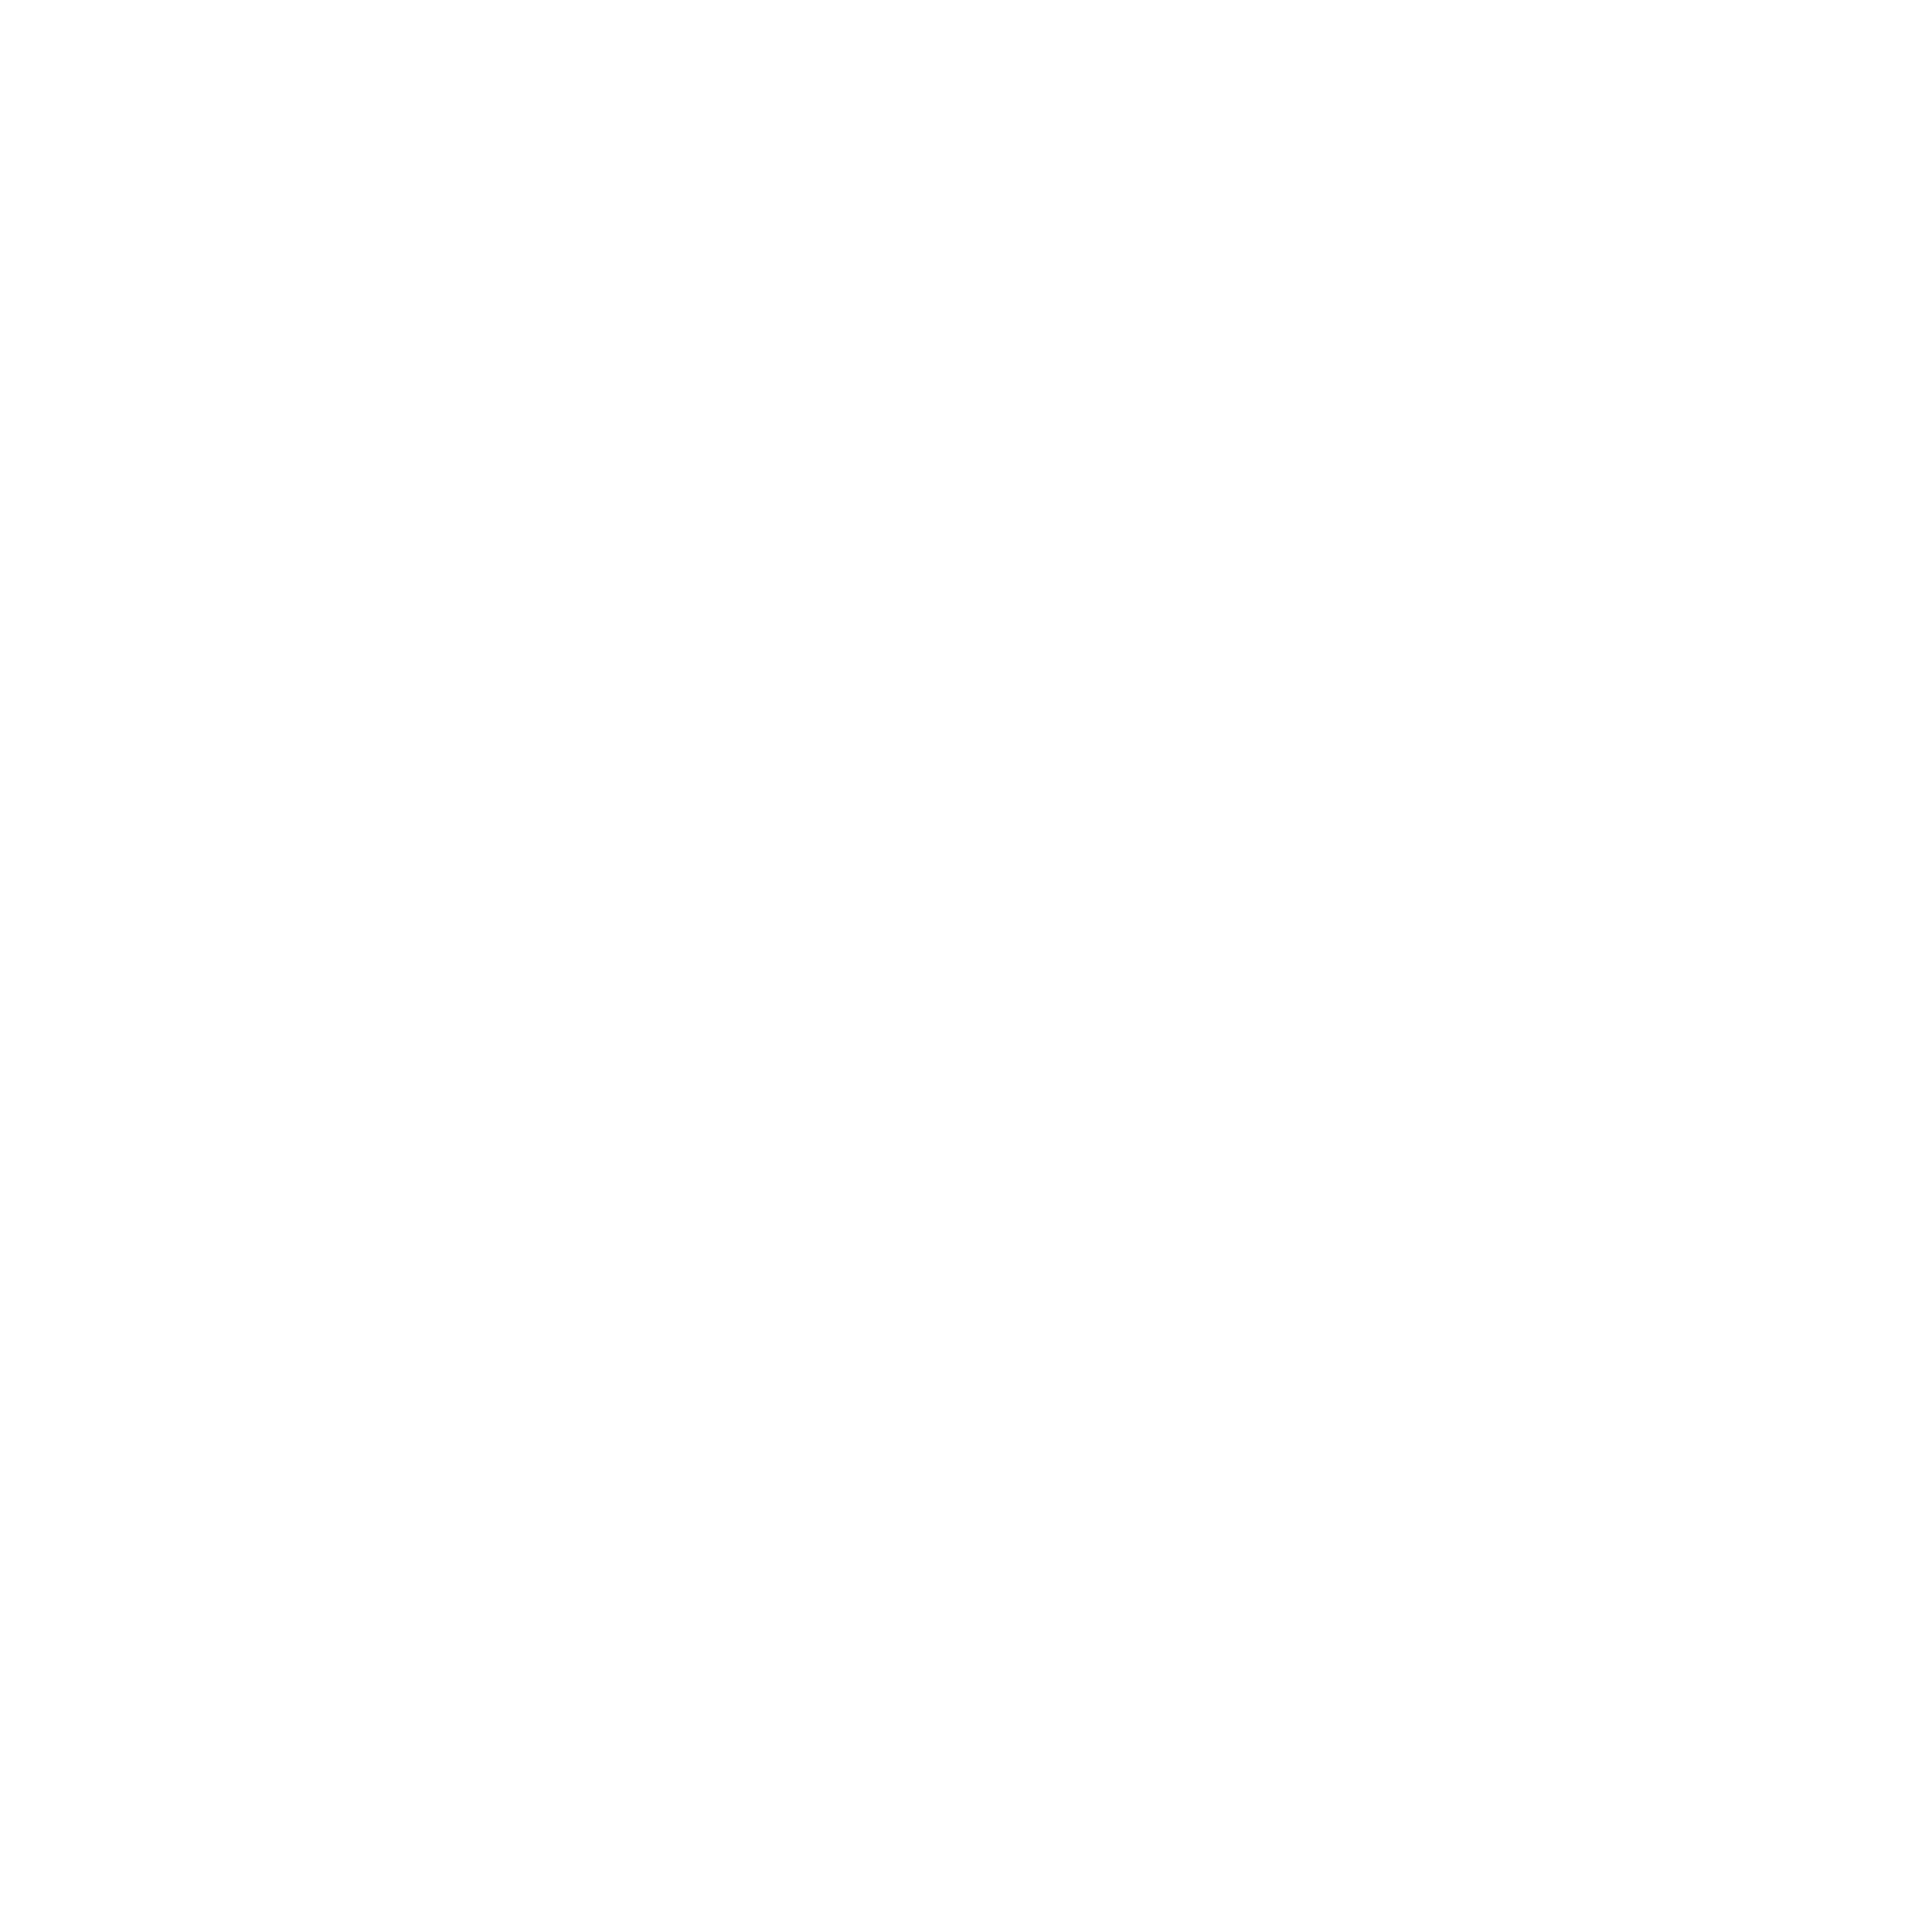 A logo for Digital Umbilical